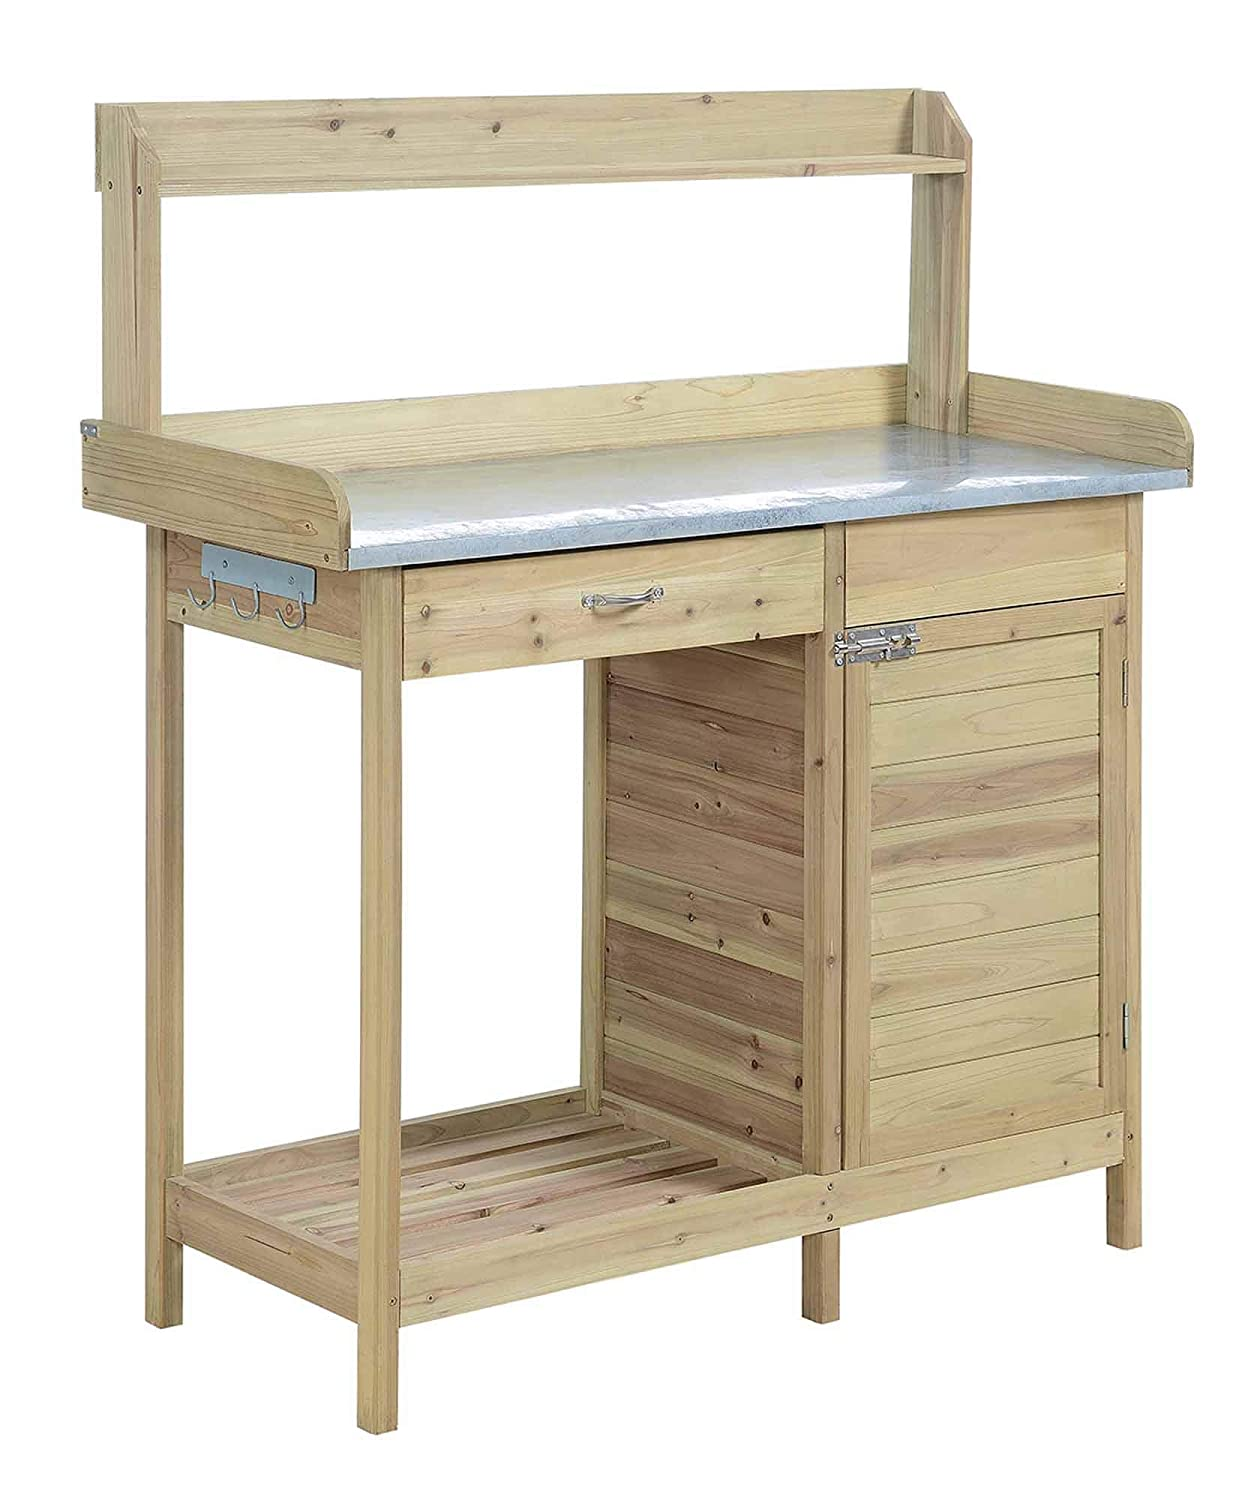 Terrific Convenience Concepts Deluxe Potting Bench With Cabinet Ibusinesslaw Wood Chair Design Ideas Ibusinesslaworg